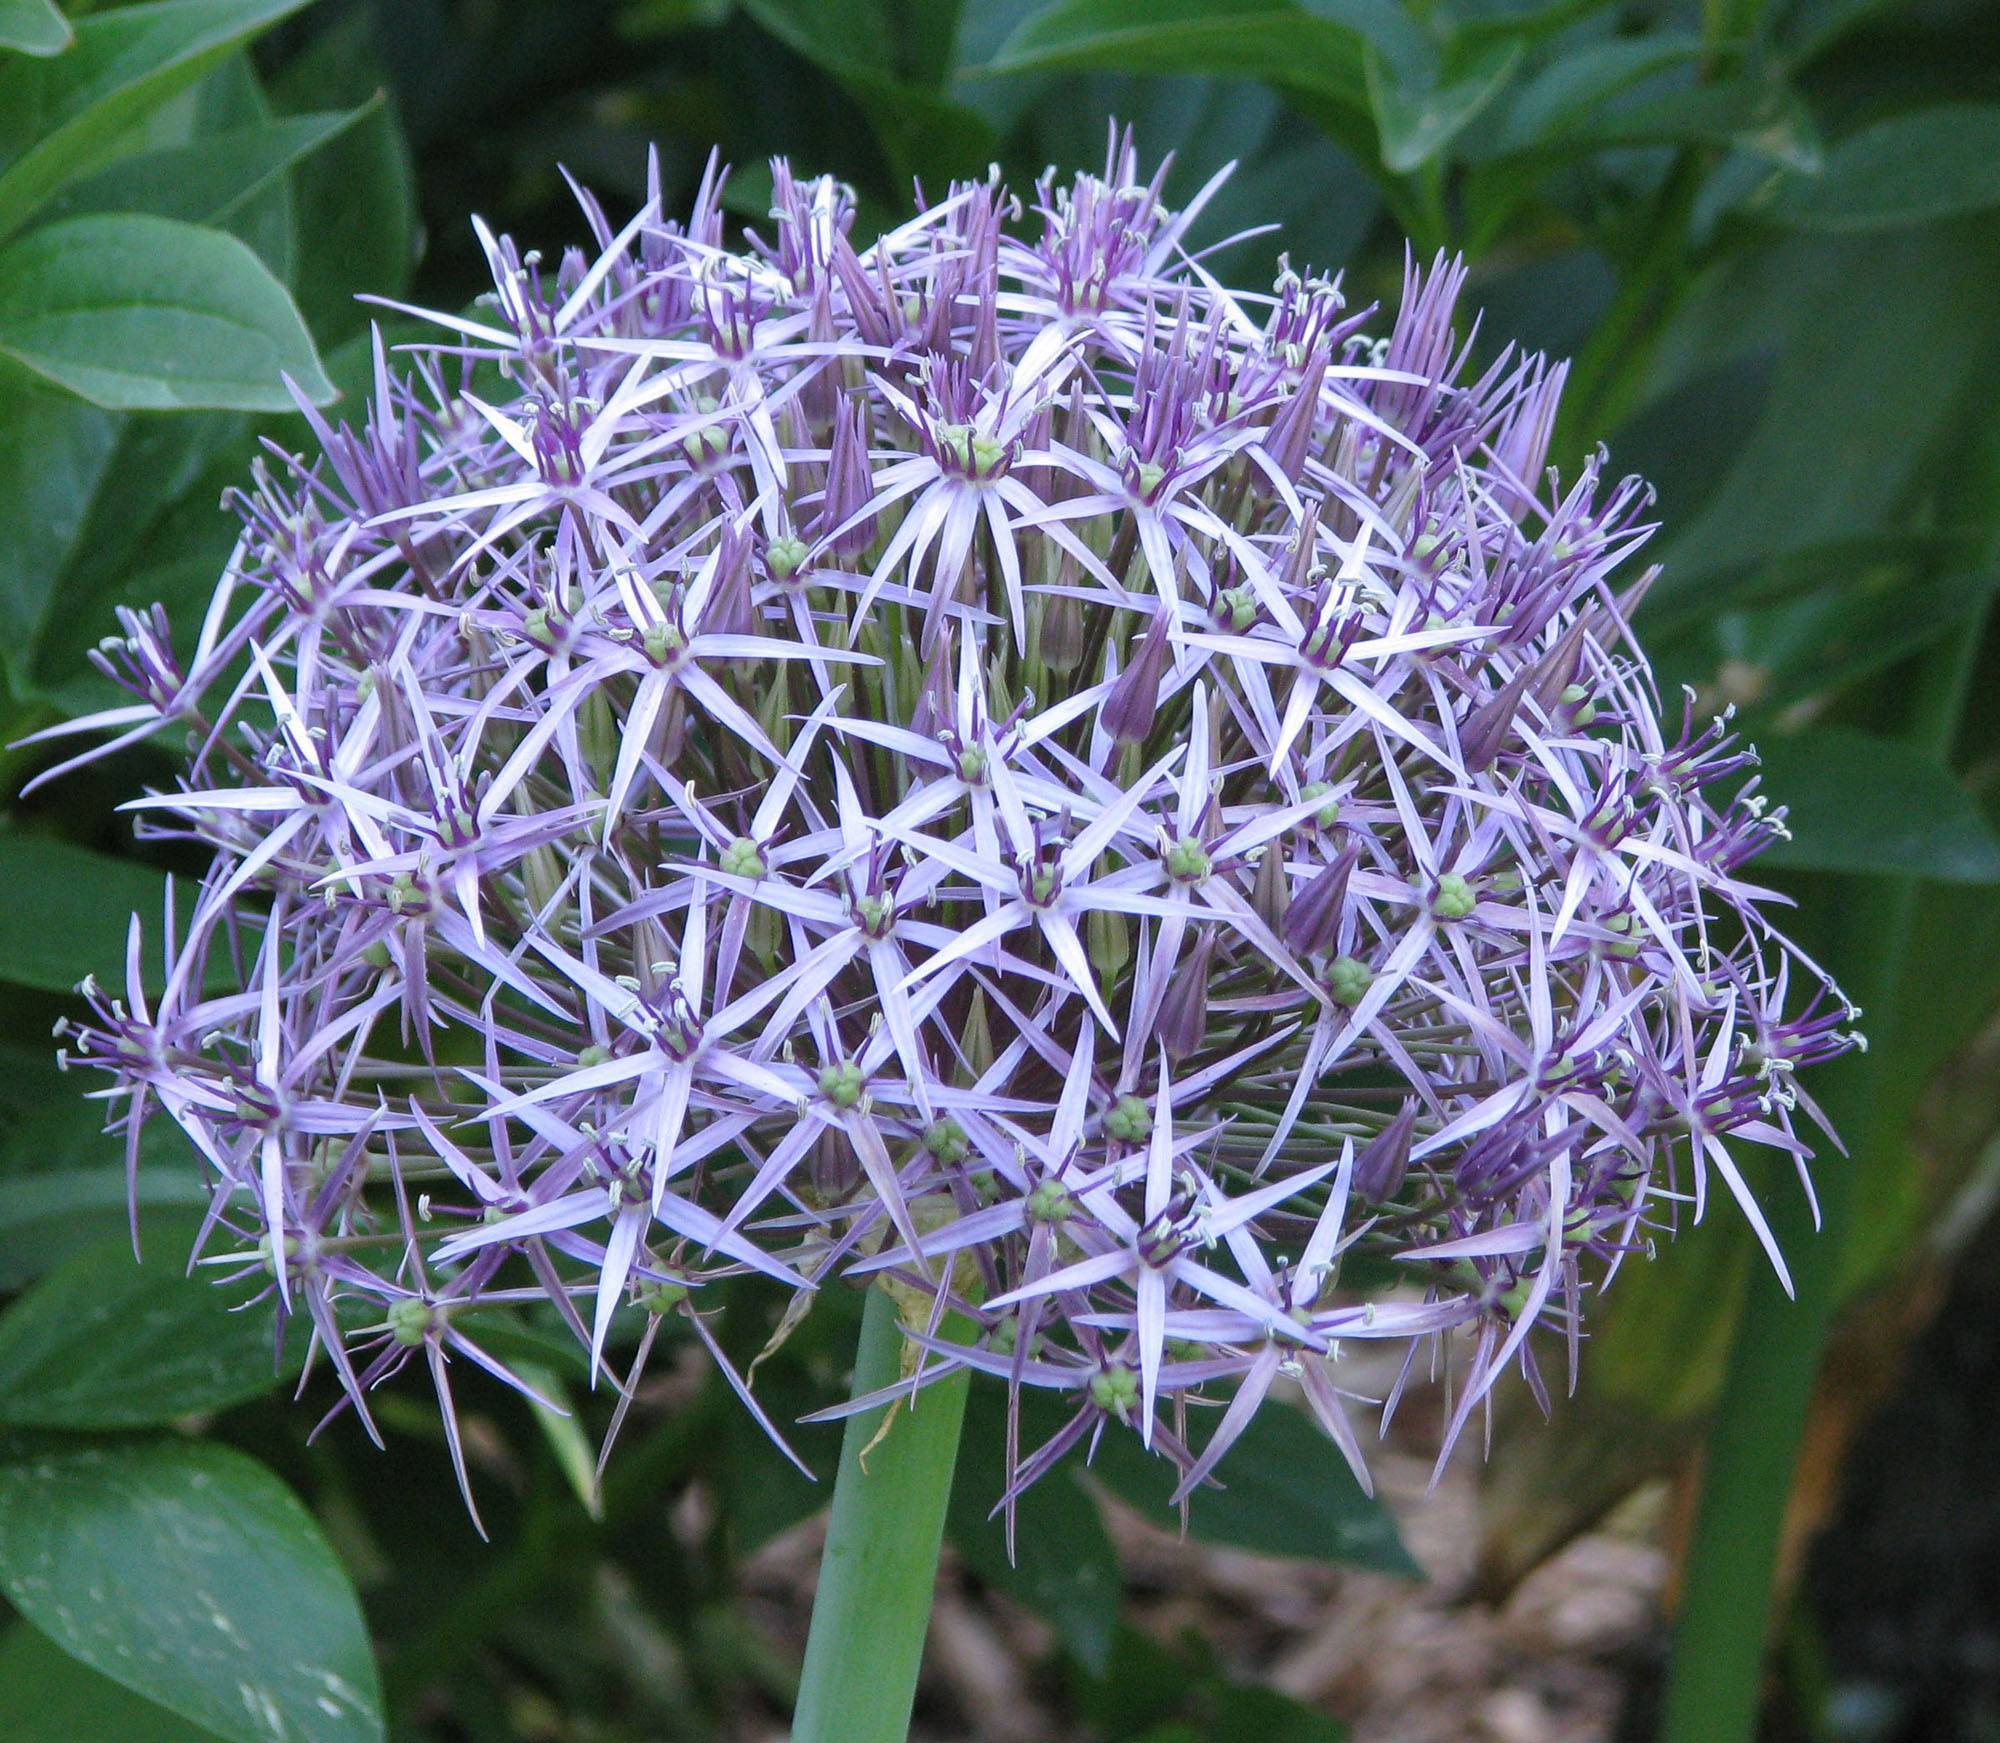 Flowering onions — alliums — mostly appear as pastel pompoms atop slender stalks. Plant this ornamental onion for beauty and not for eating by deer or humans.